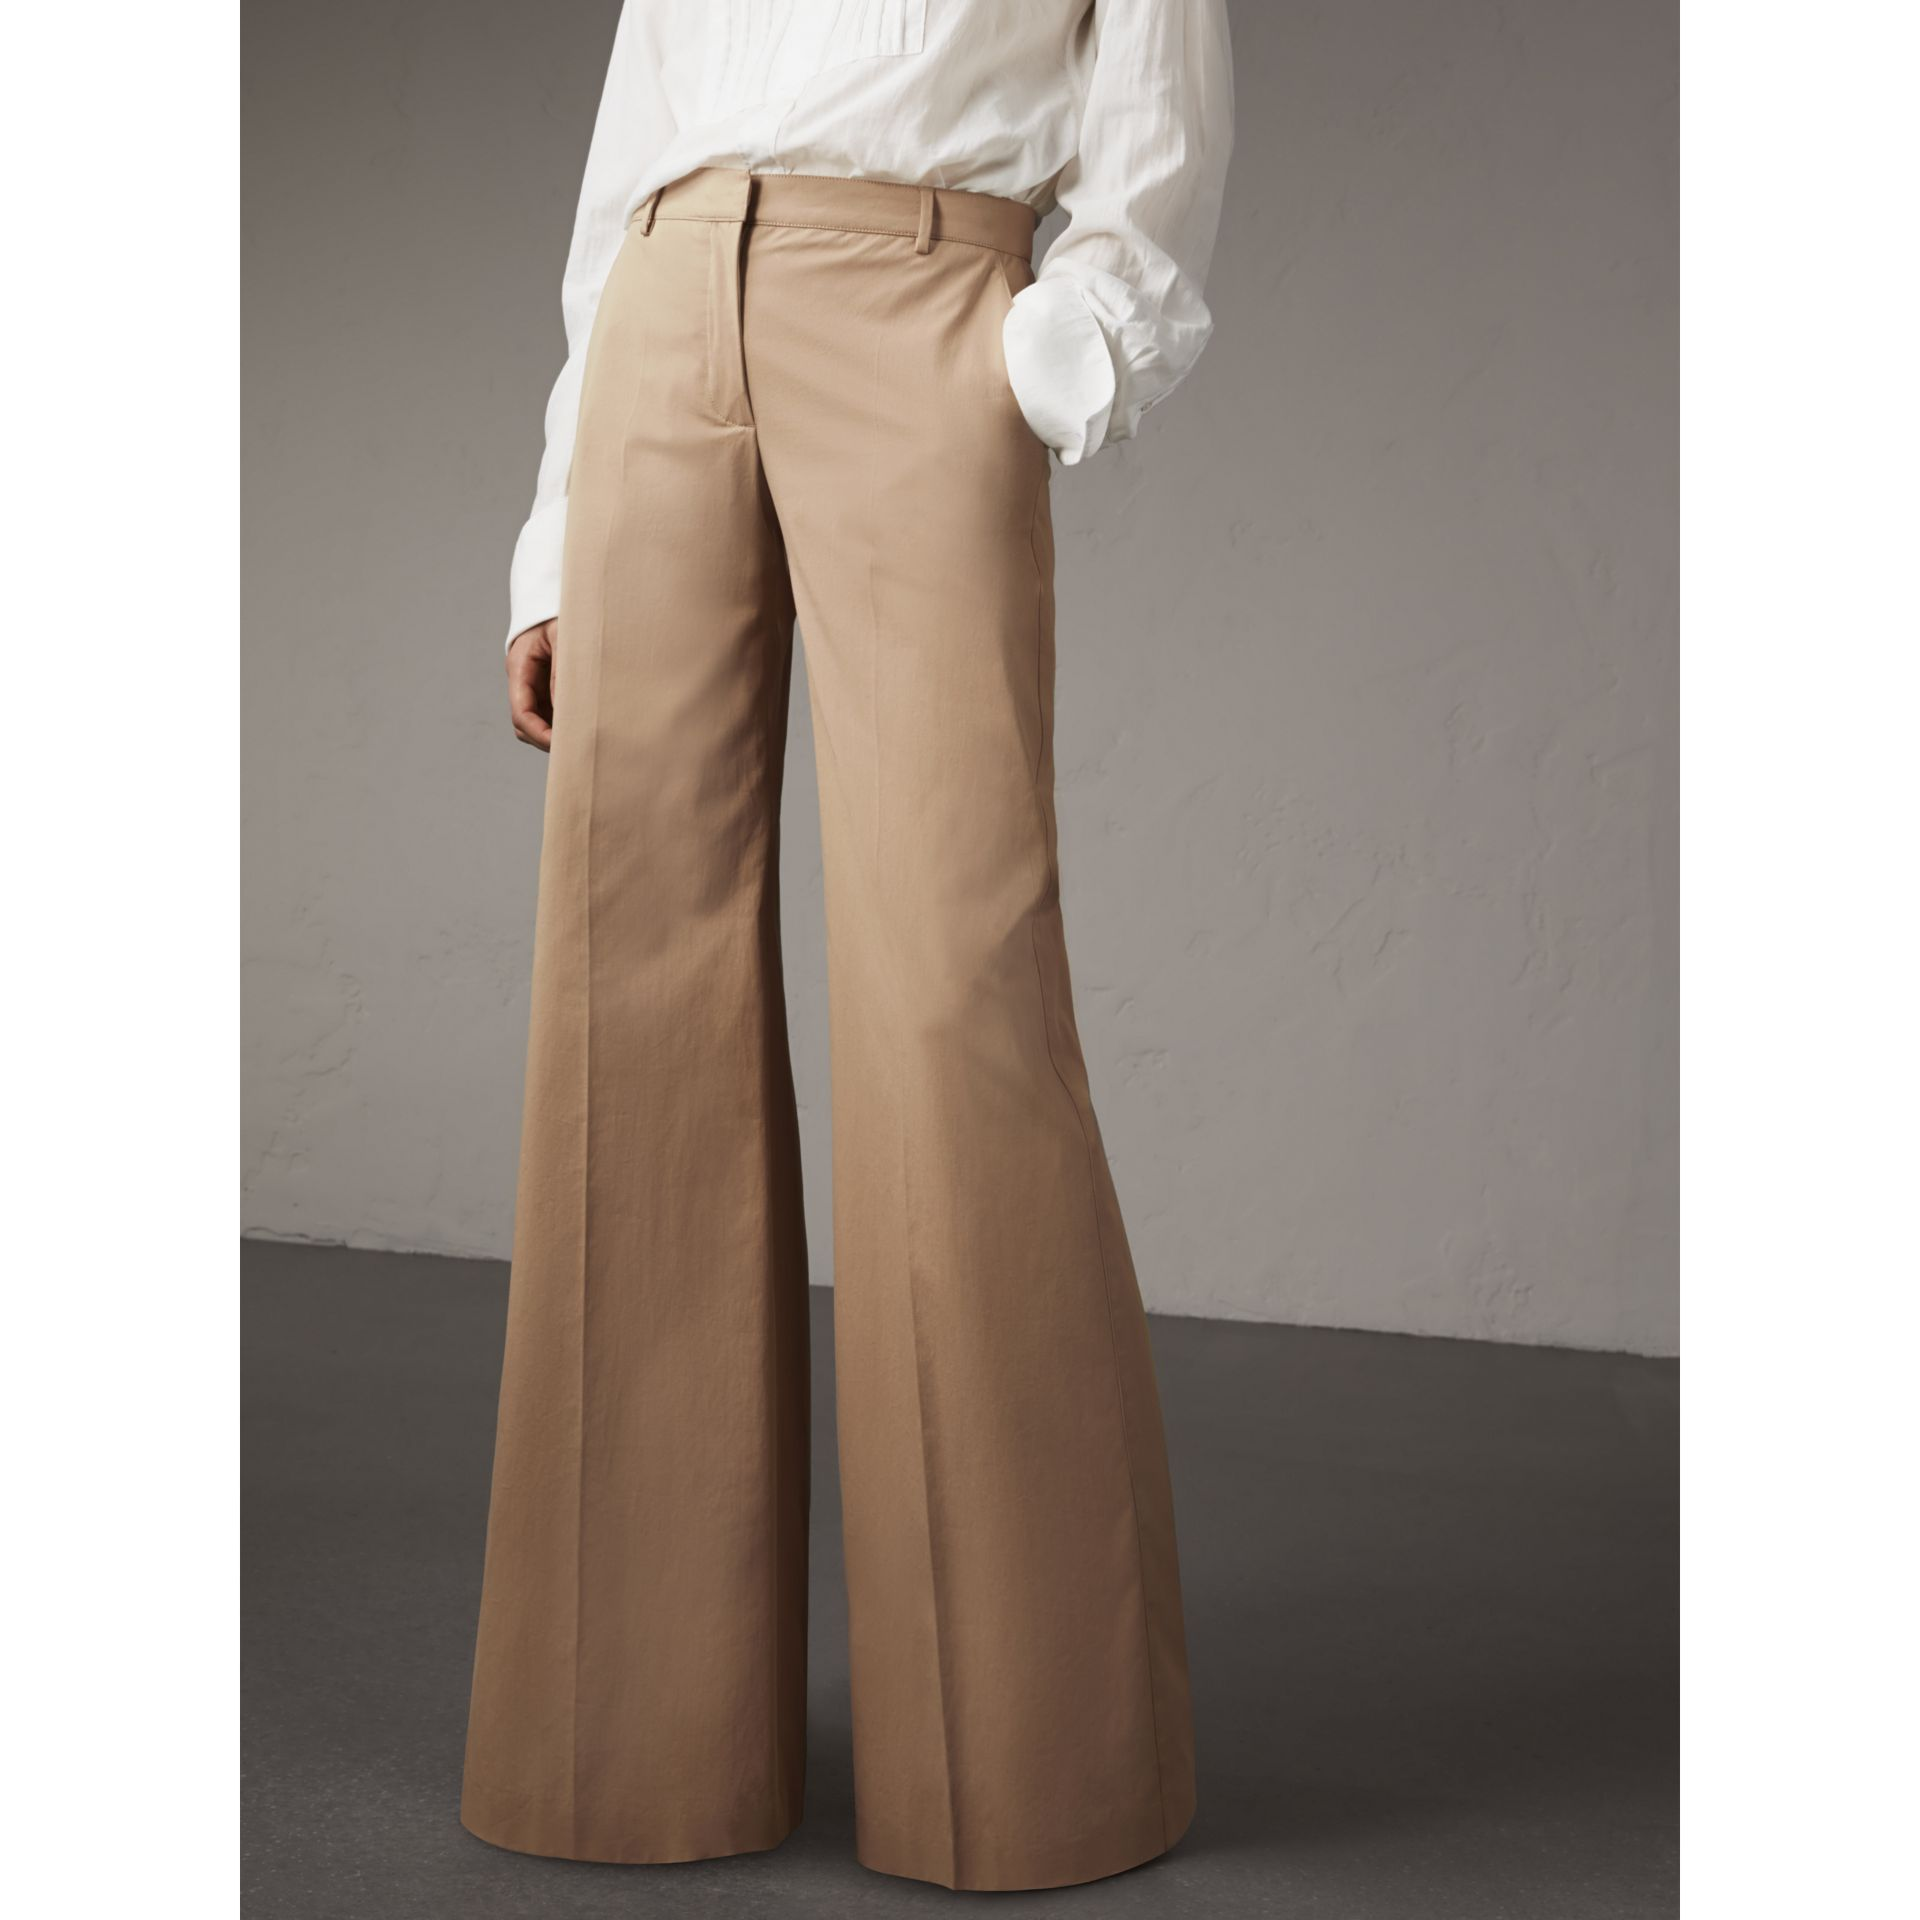 Cotton Twill Wide-leg Trousers in Camel - Women | Burberry - gallery image 5